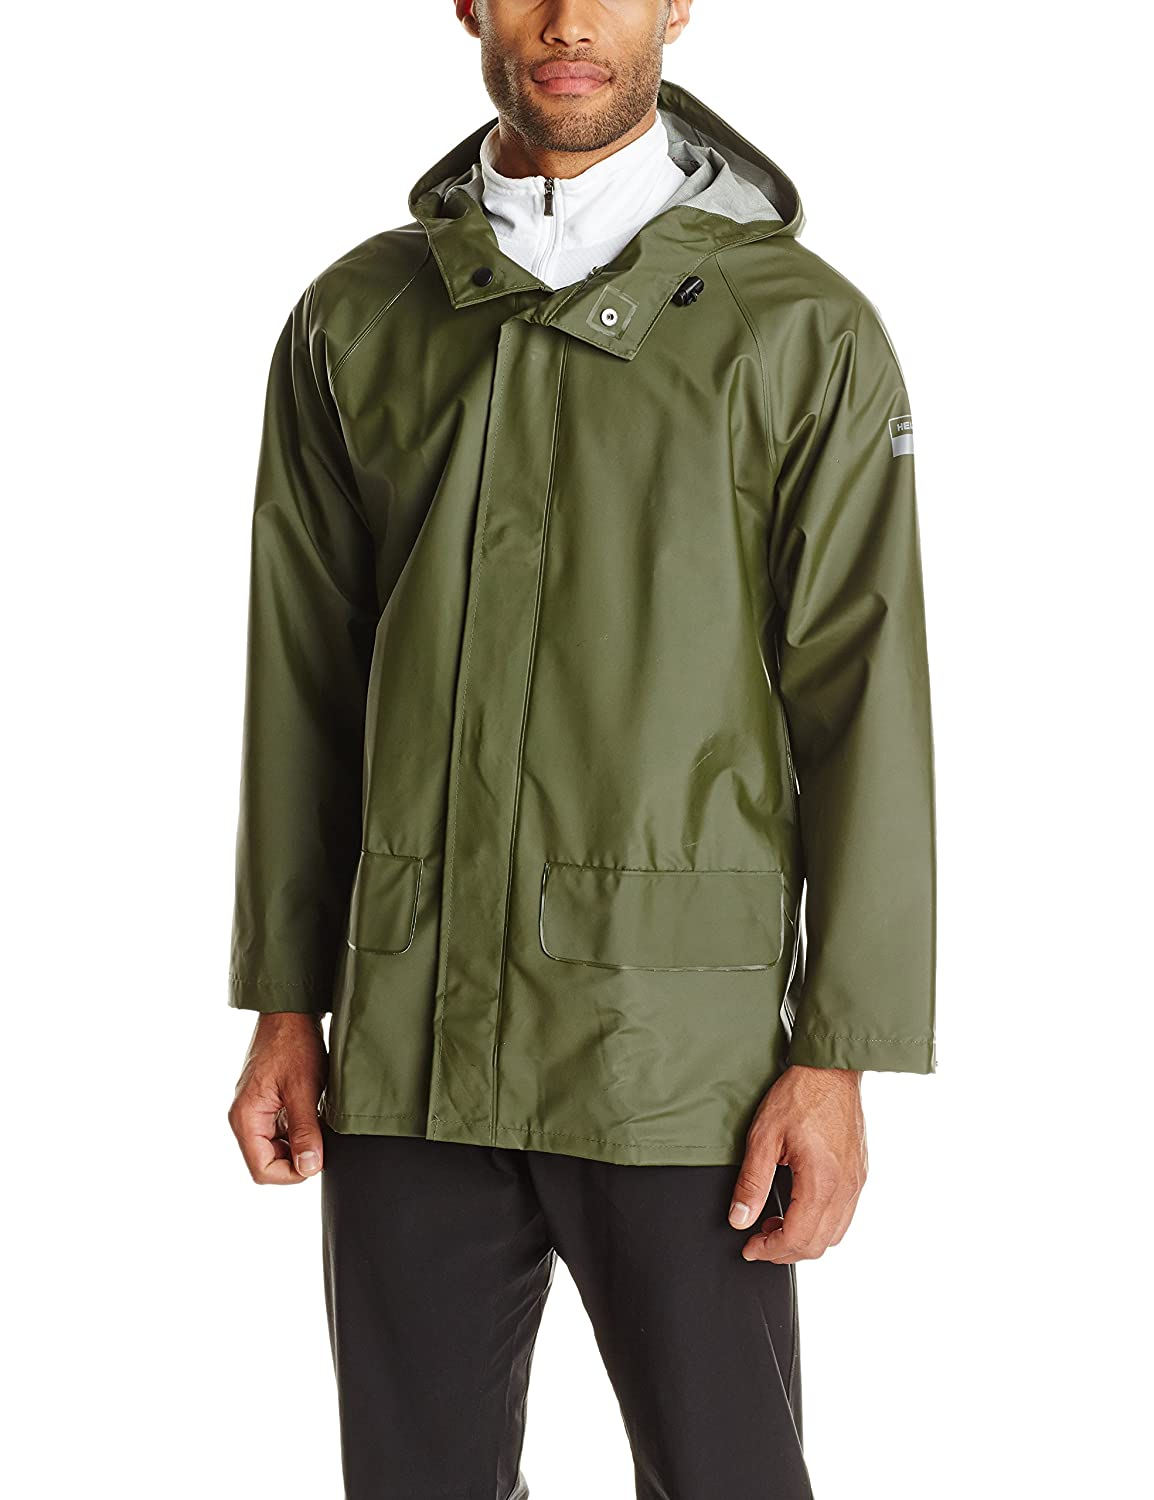 Mens olive green raincoat